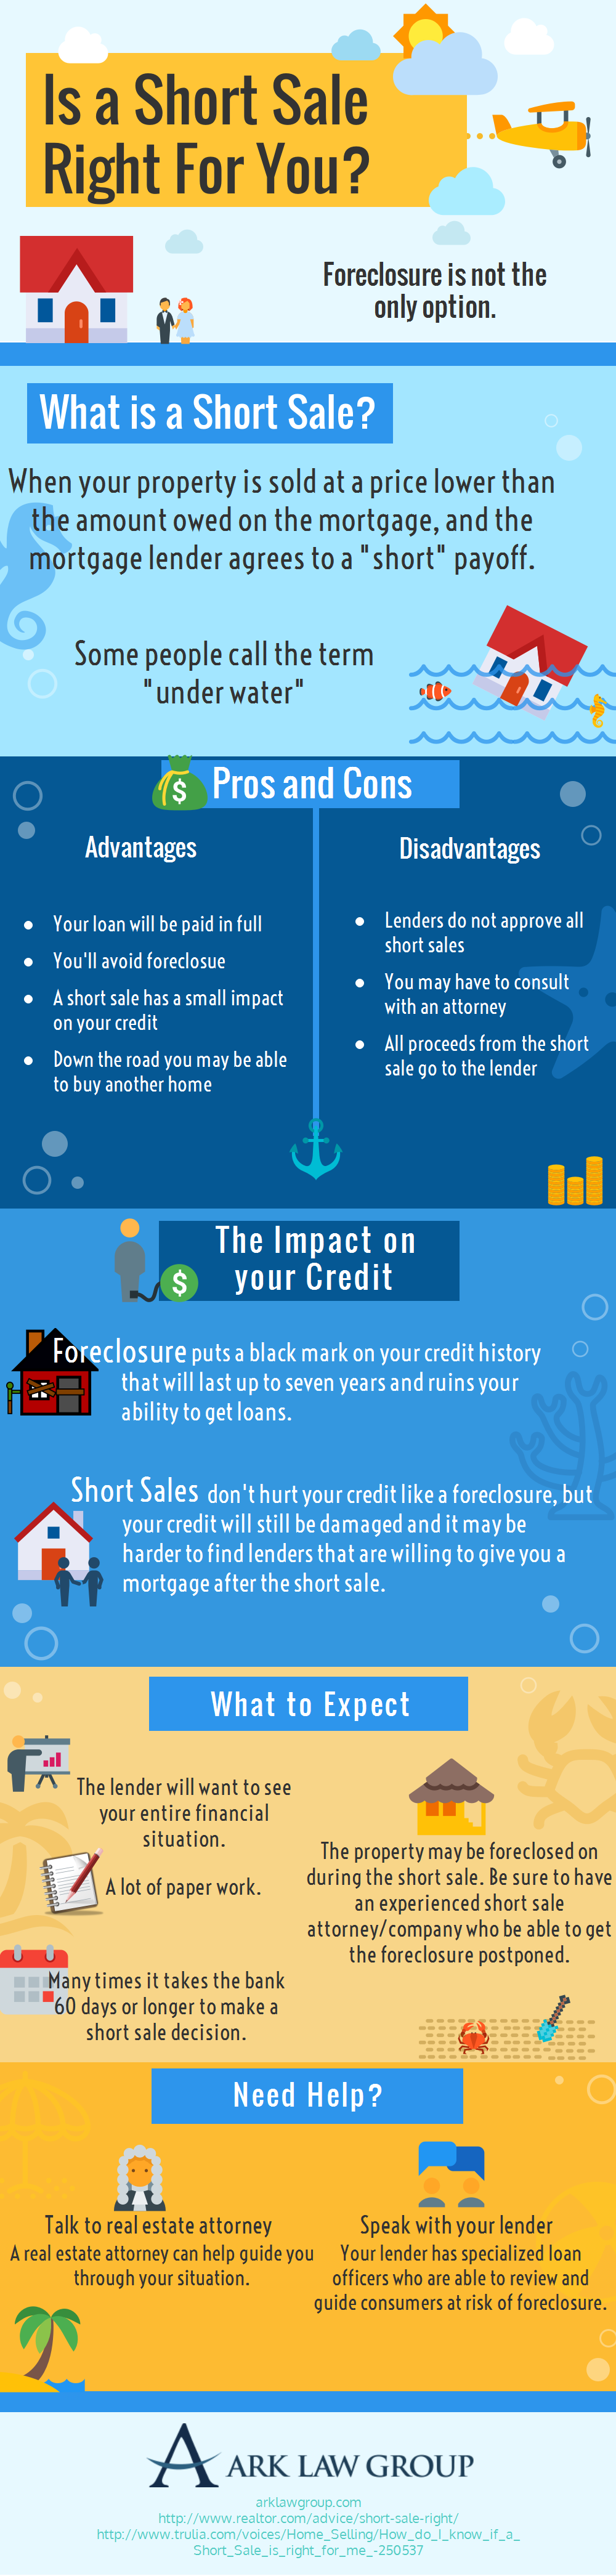 is-the-short-sale-for-you-infographic